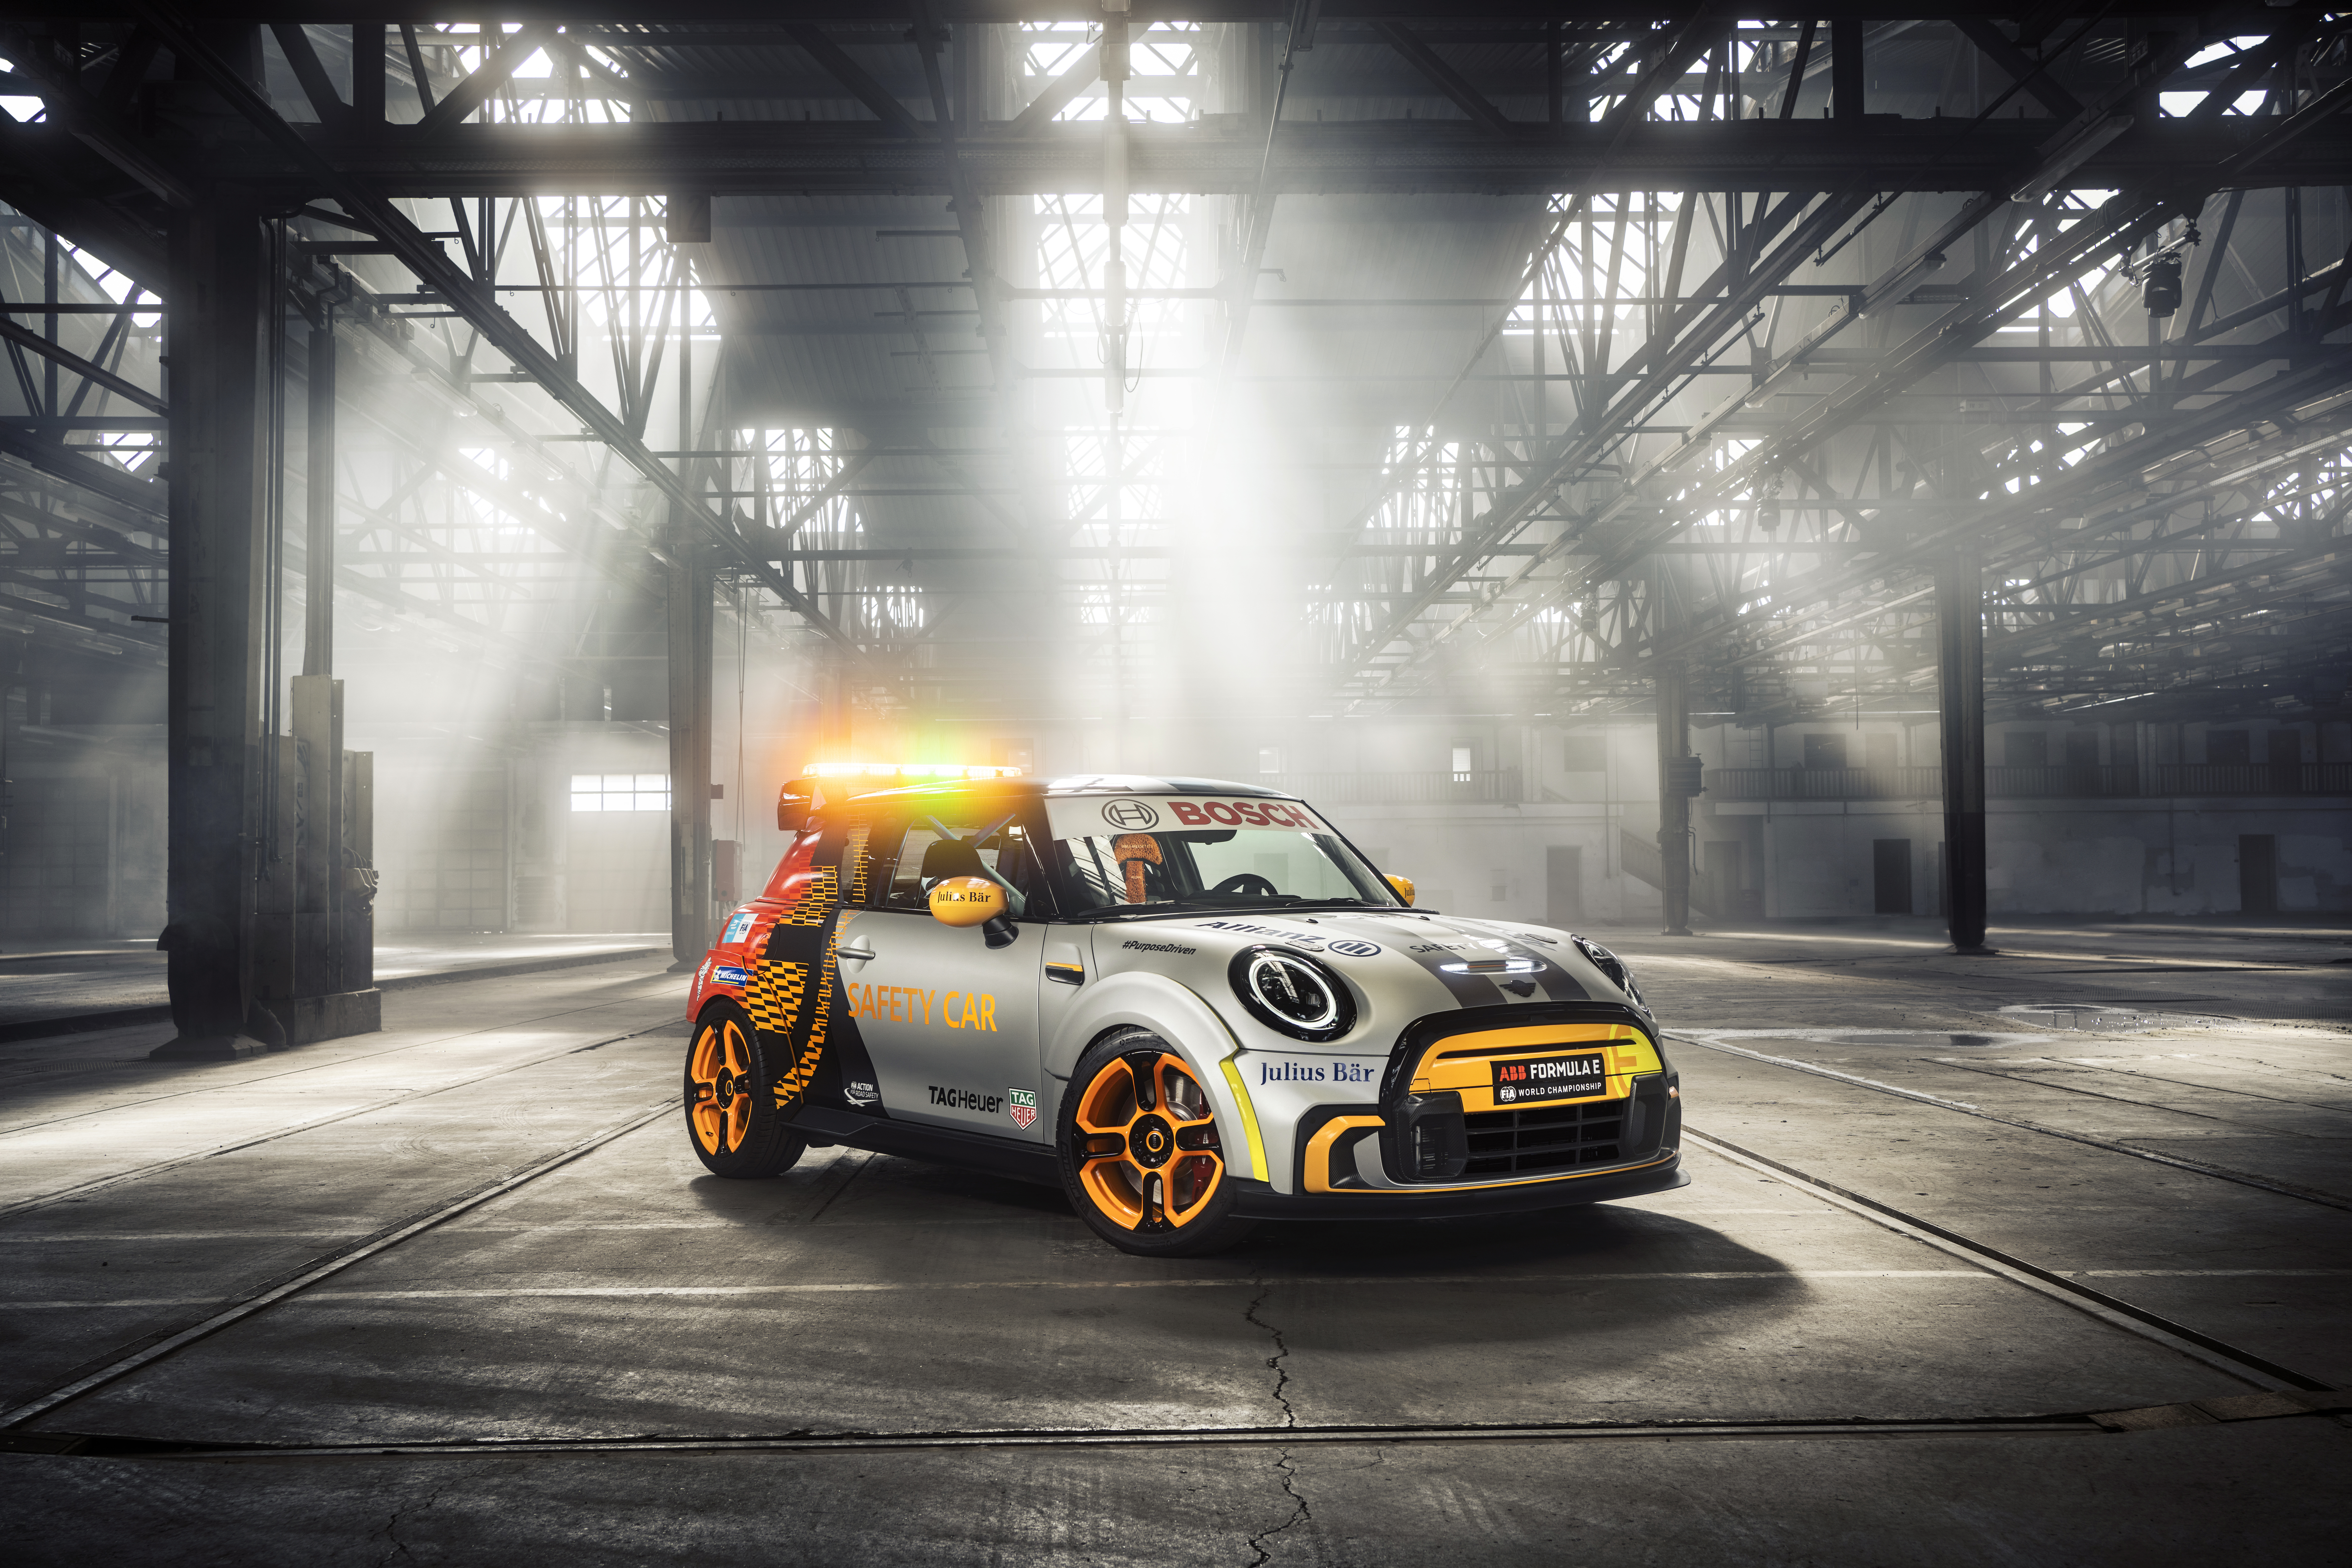 mini electric pacesetter 2021 side view 4k 1620169518 - MINI Electric Pacesetter 2021 Side View 4k - MINI Electric Pacesetter 2021 Side View 4k wallpapers